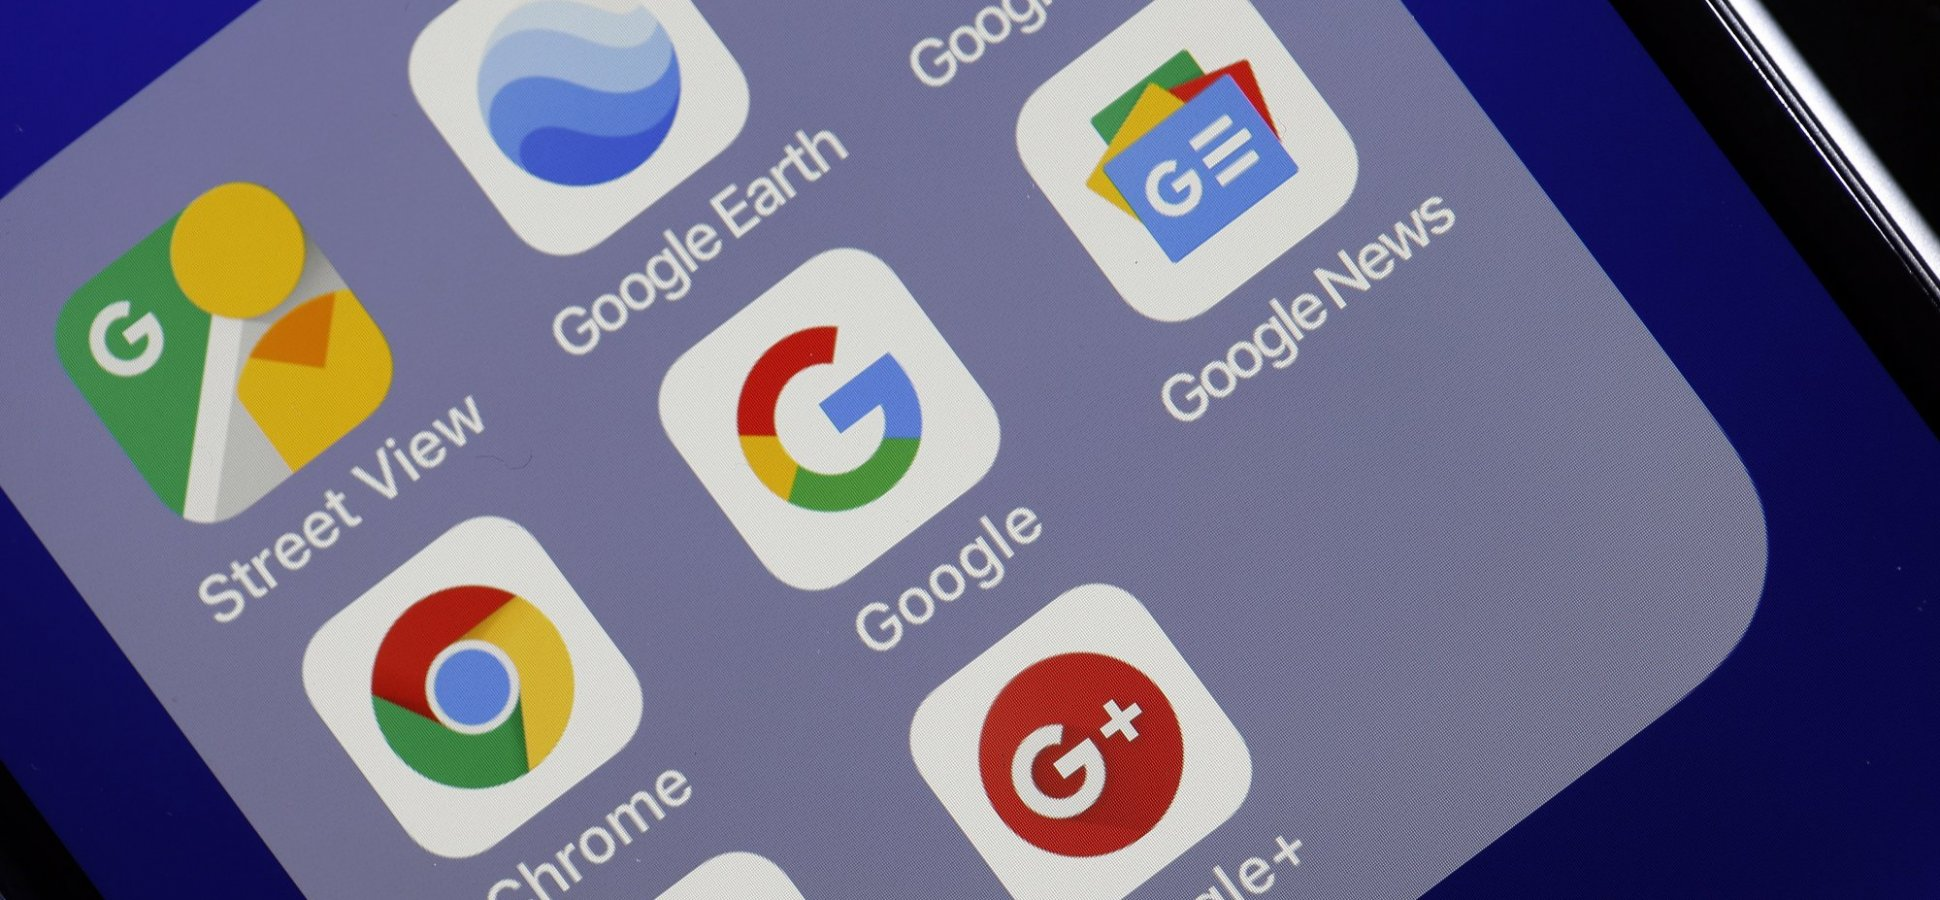 Google's Making It Easier to Delete Personal Data, and It's a Big